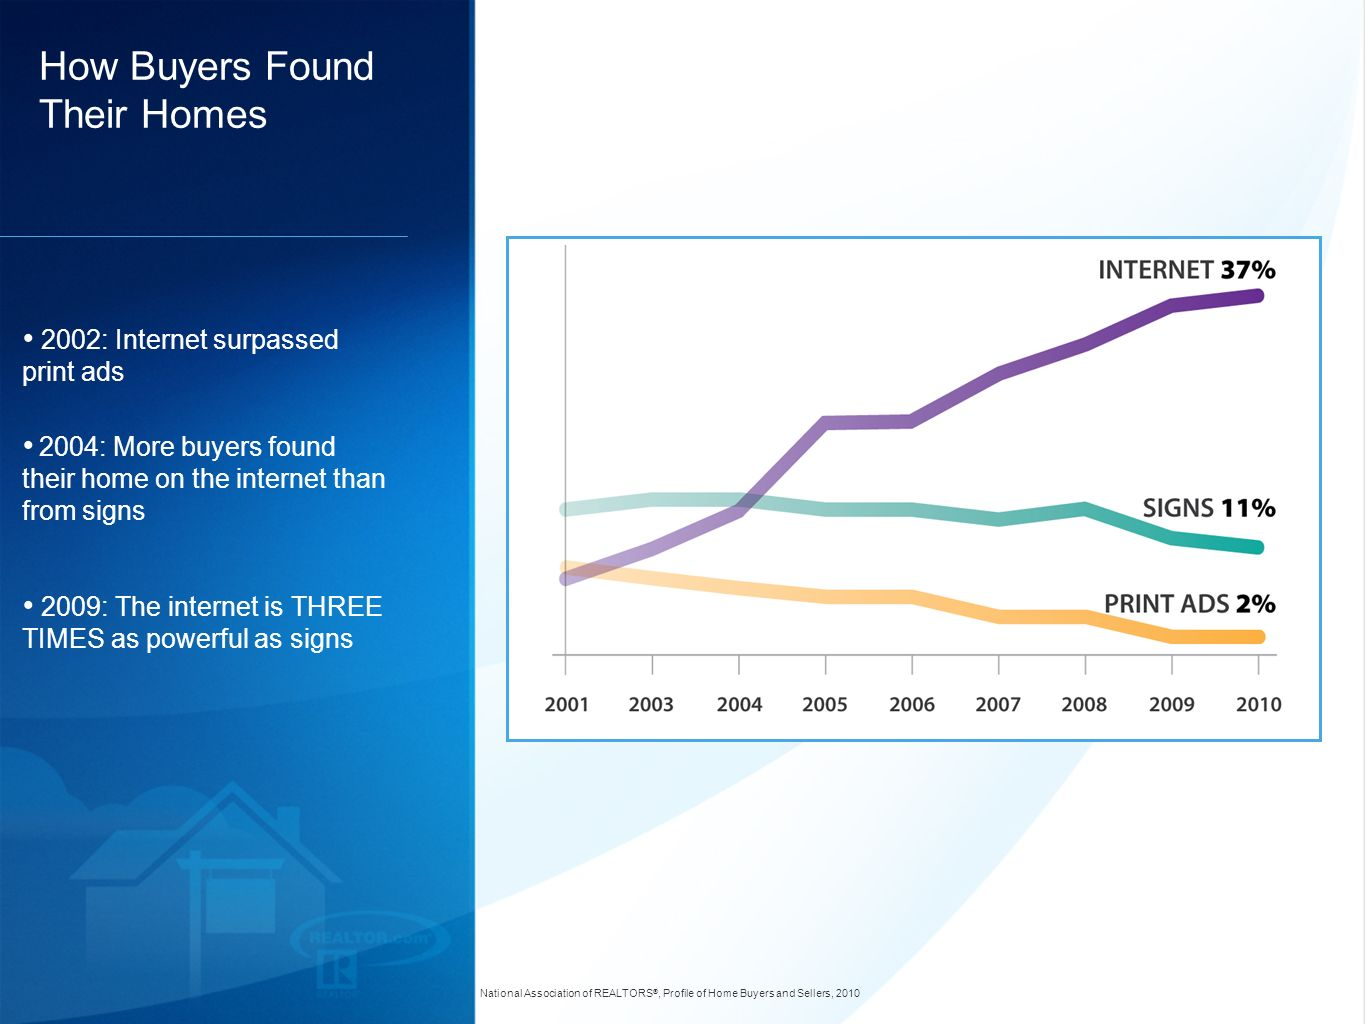 How Buyers Found Their Homes 2002: Internet surpassed print ads 2004: More buyers found their home on the internet than from signs 2009: The internet